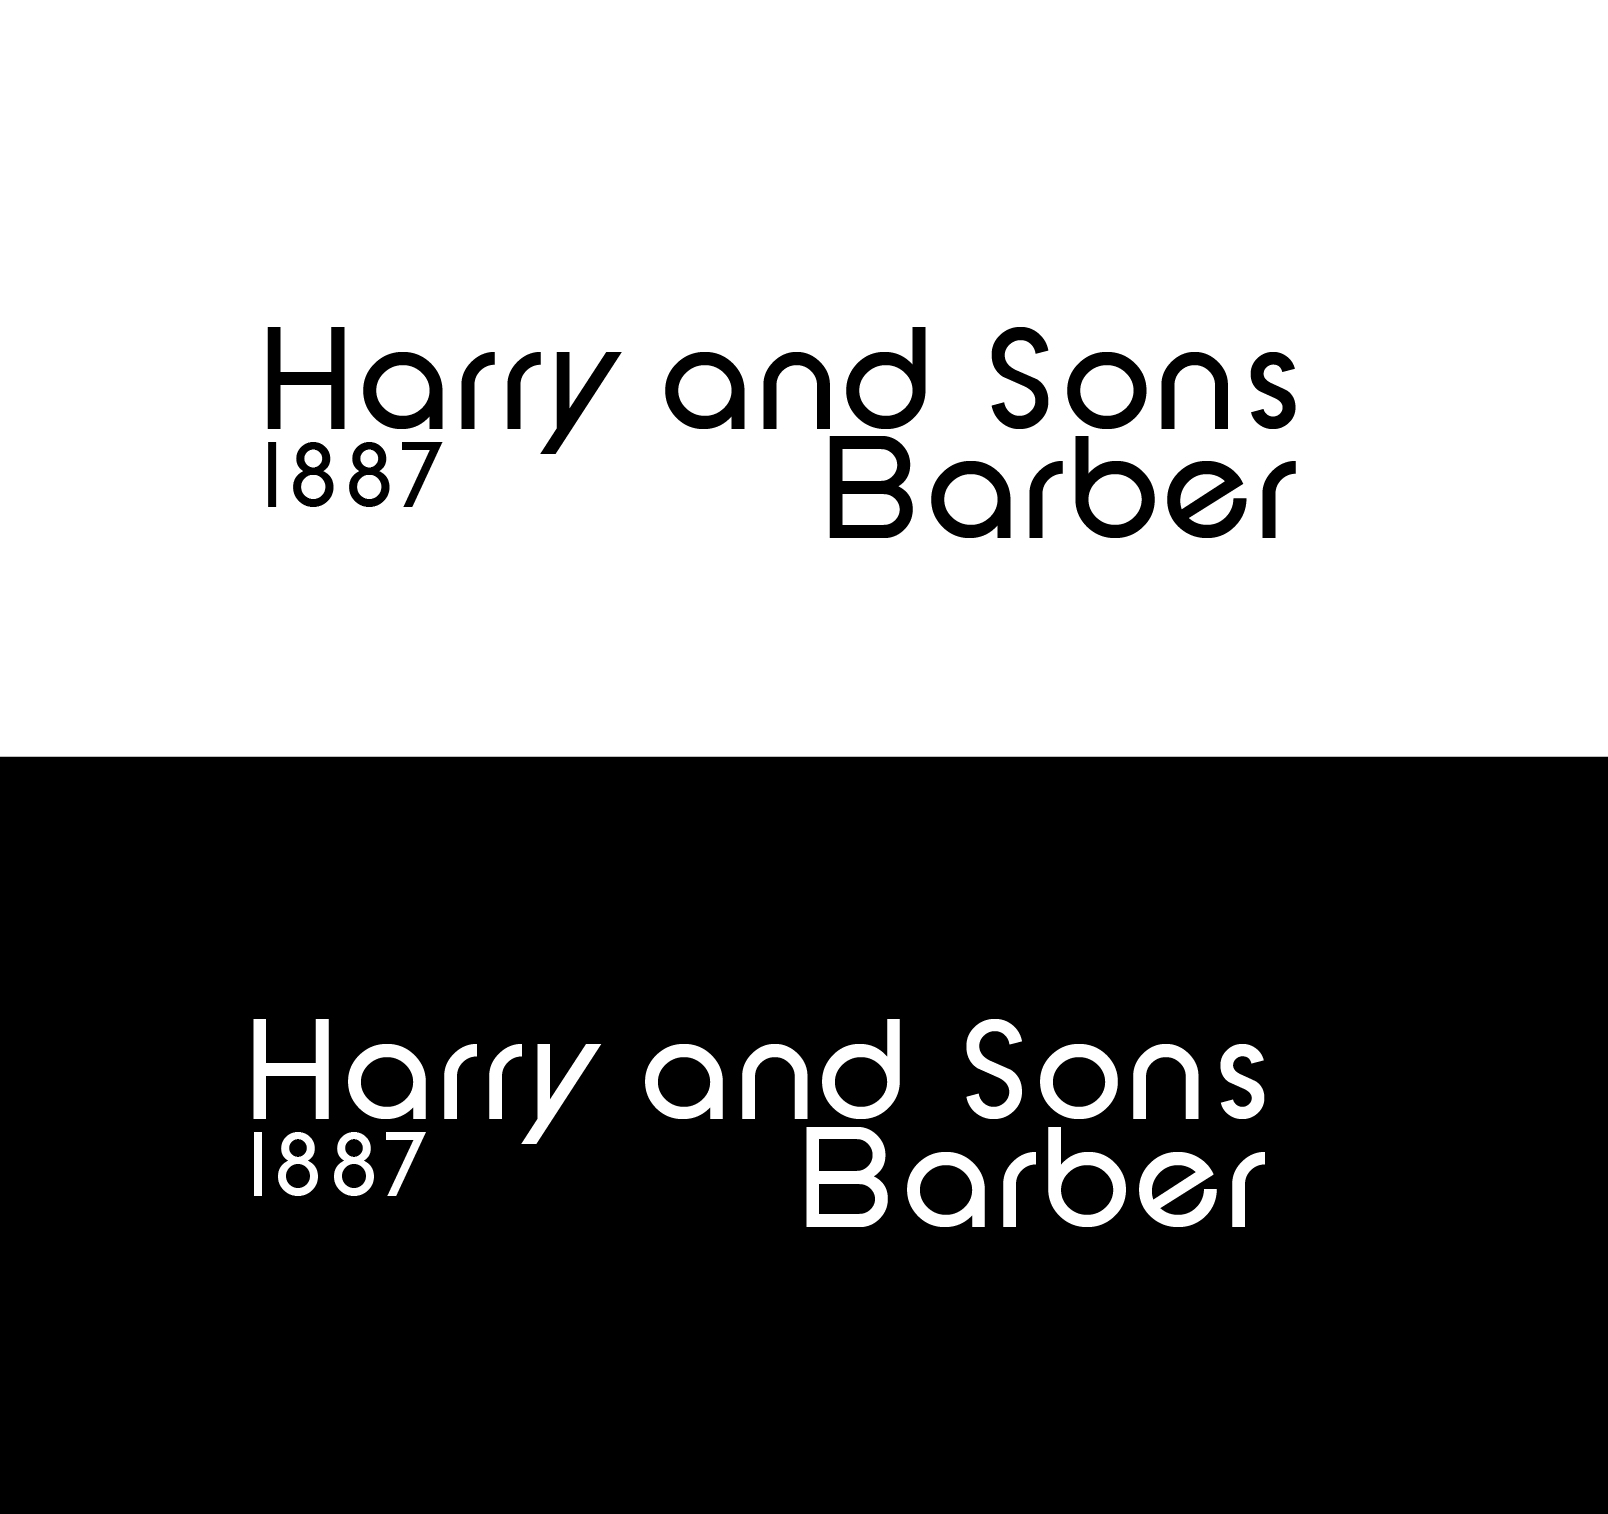 Logo Design by Ahtasham Ahmed - Entry No. 214 in the Logo Design Contest Captivating Logo Design for Harry and Sons Barber.